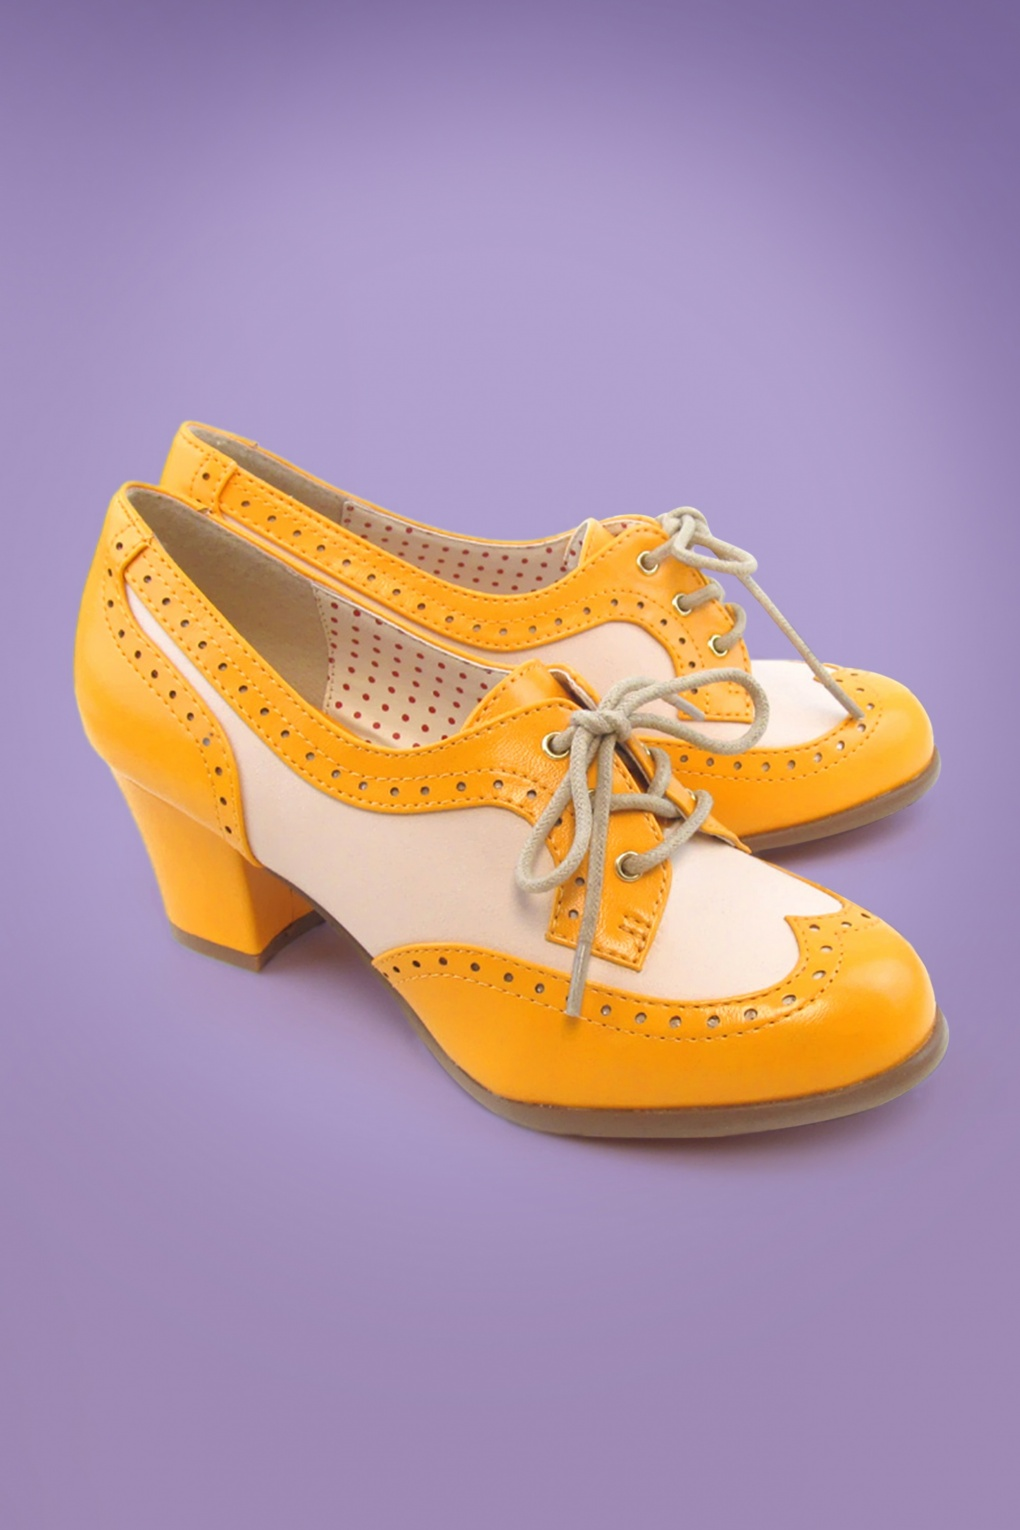 10 Popular 1940s Shoes Styles for Women 40s Remmy Oxford Shoes in Mustard £57.33 AT vintagedancer.com